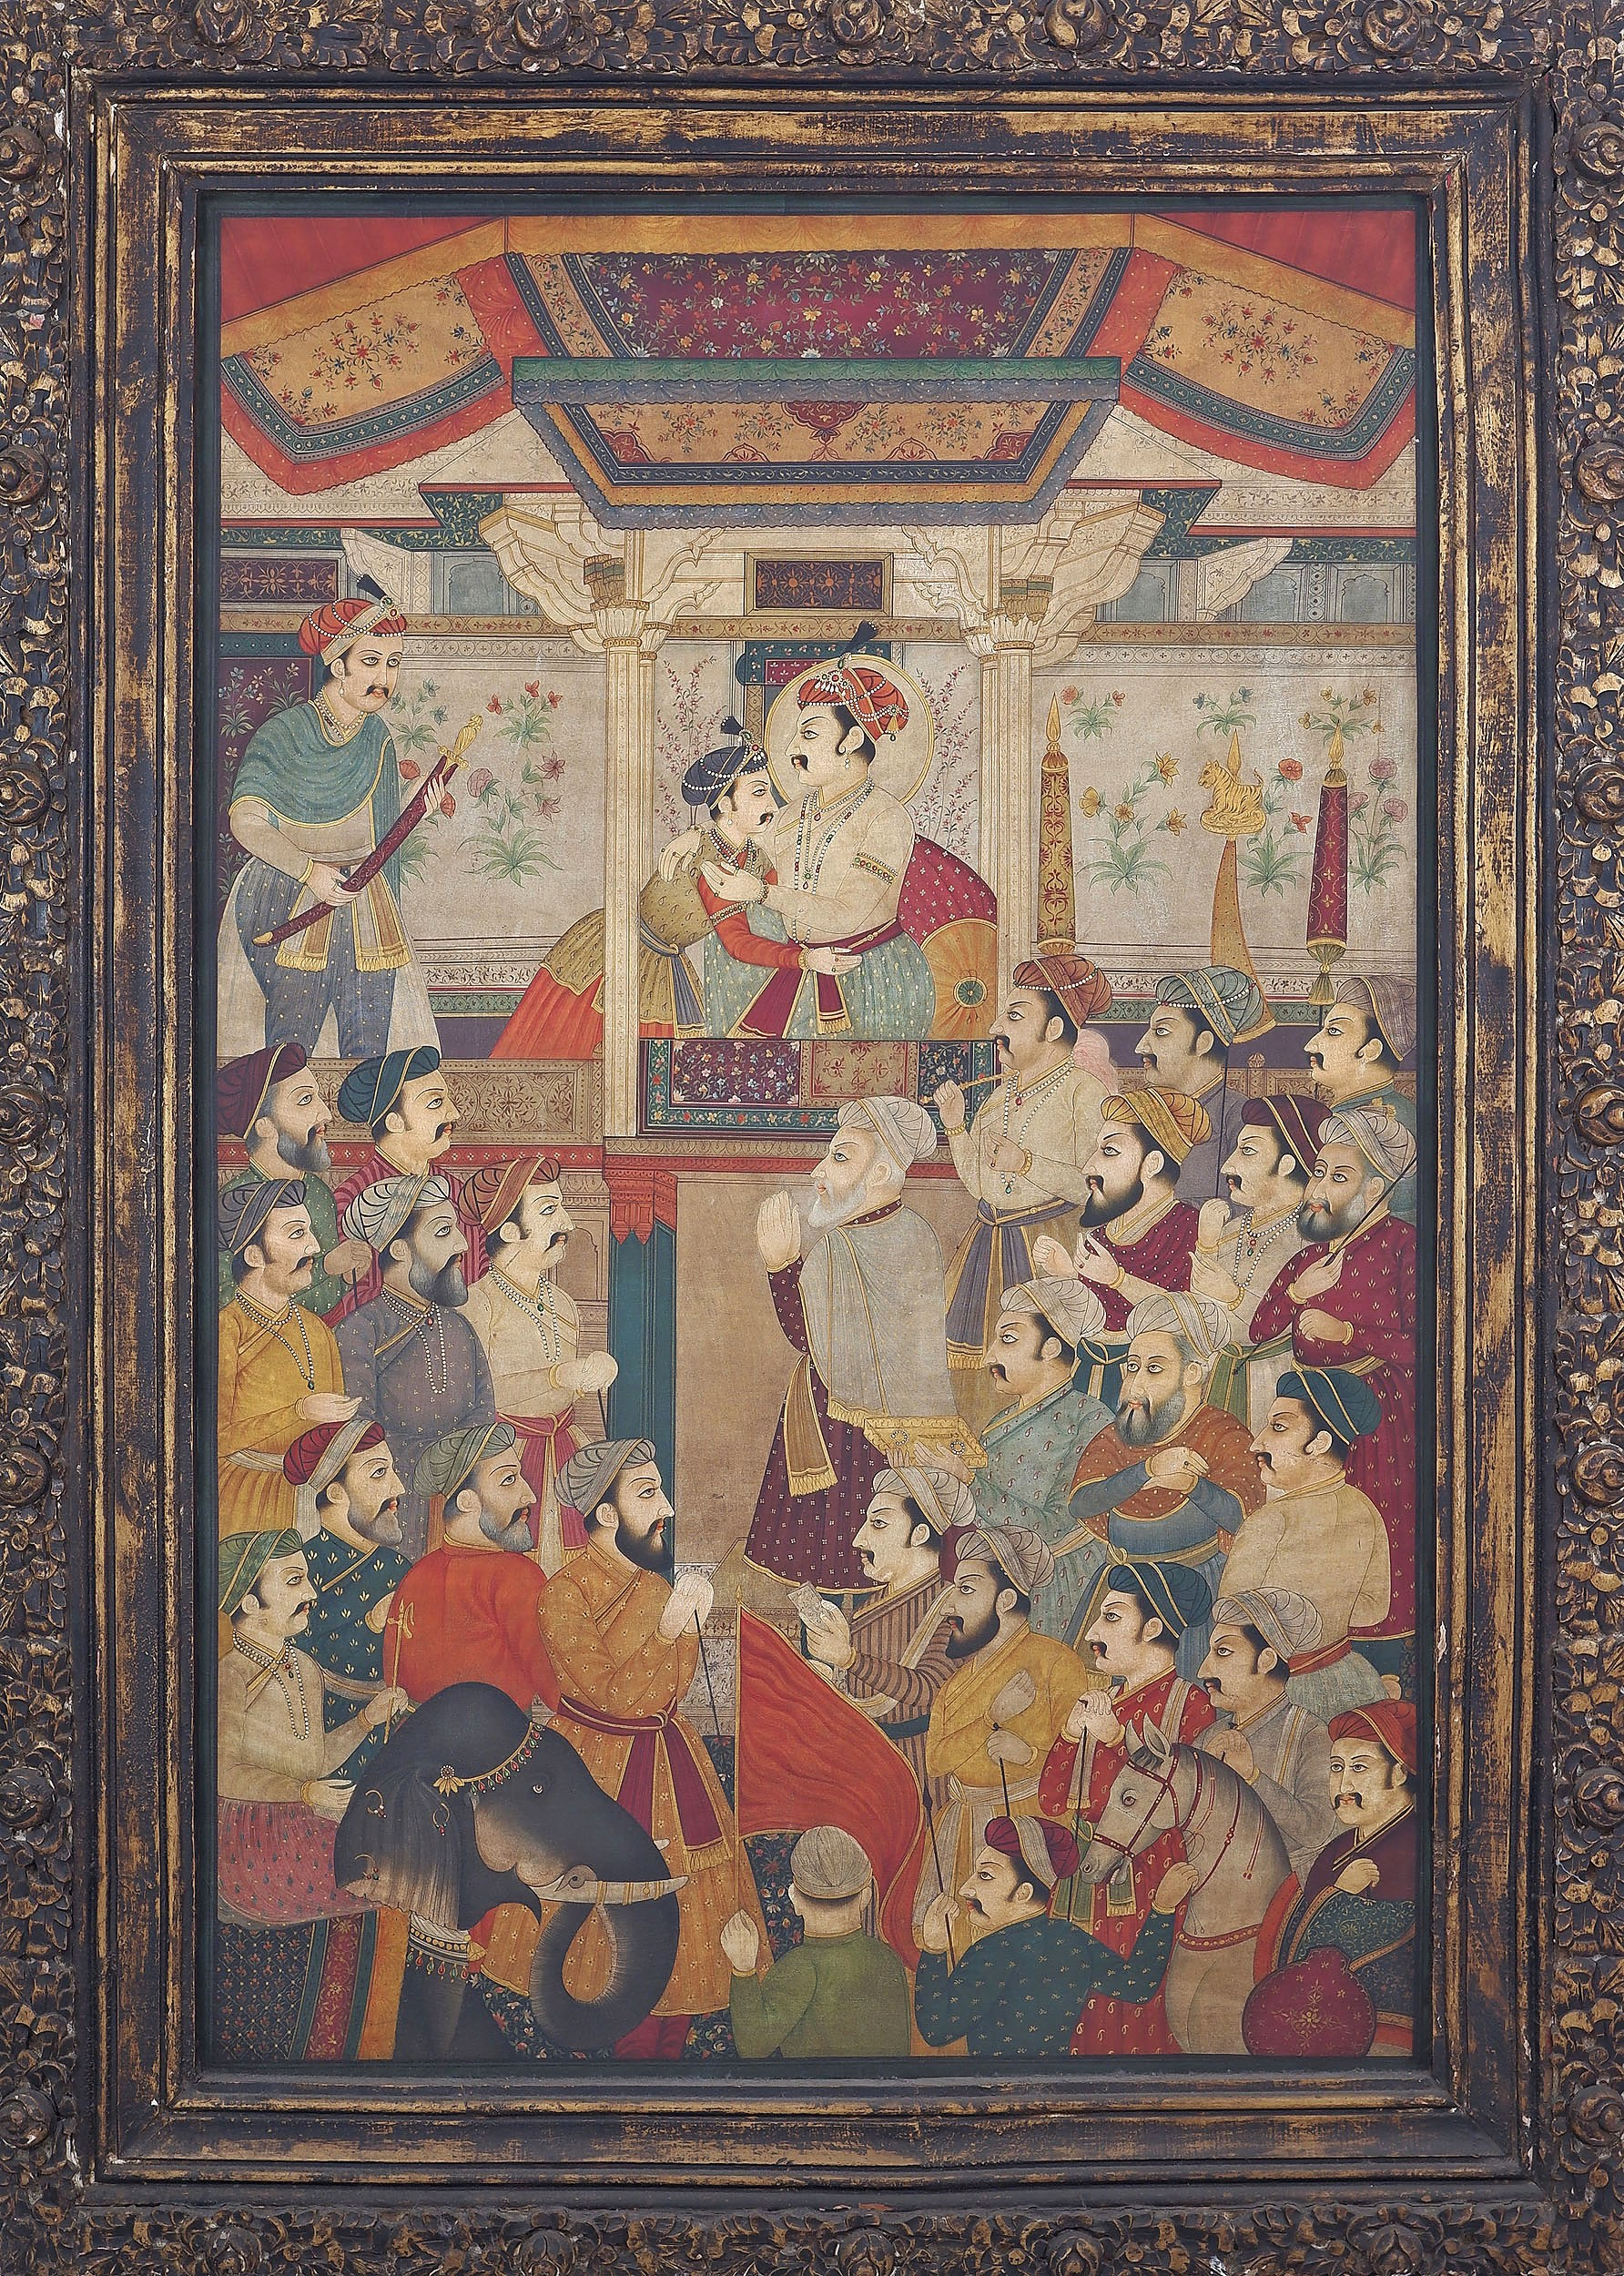 'Massive Indian Historical Painting, Mughal Court Scene with Shah Jahan, Oil on Canvas, 20th Century'